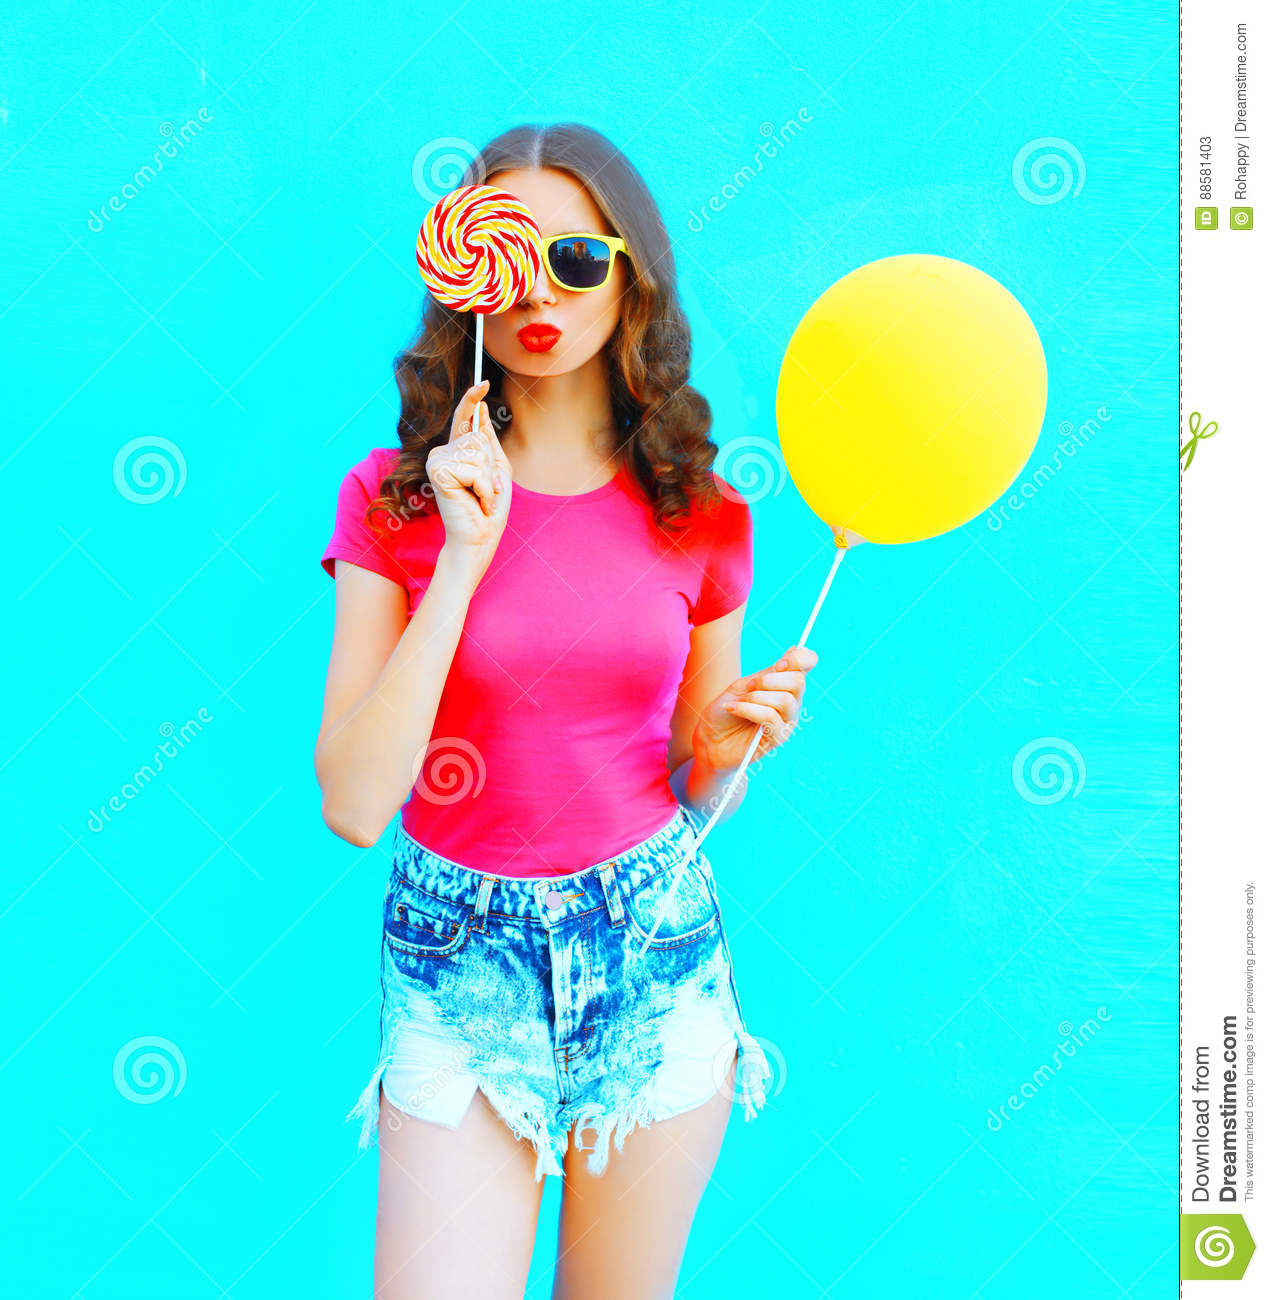 Fashion portrait pretty young woman wearing pink t-shirt, denim shorts with yellow air balloon, lollipop candy over colorful blue